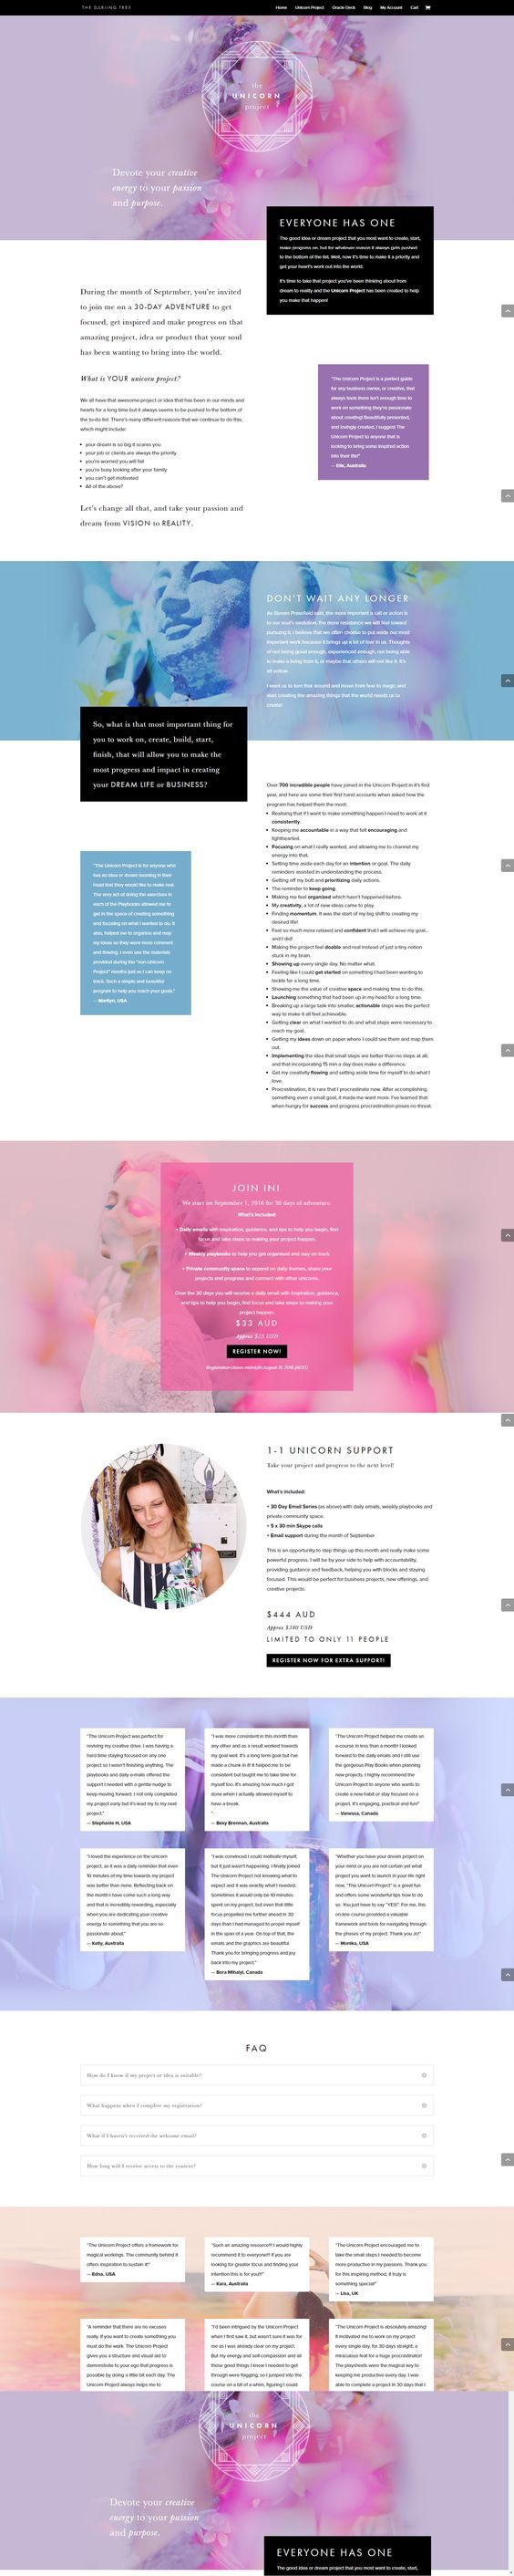 85 best inspiration sales pages images on pinterest design sales page fandeluxe Image collections